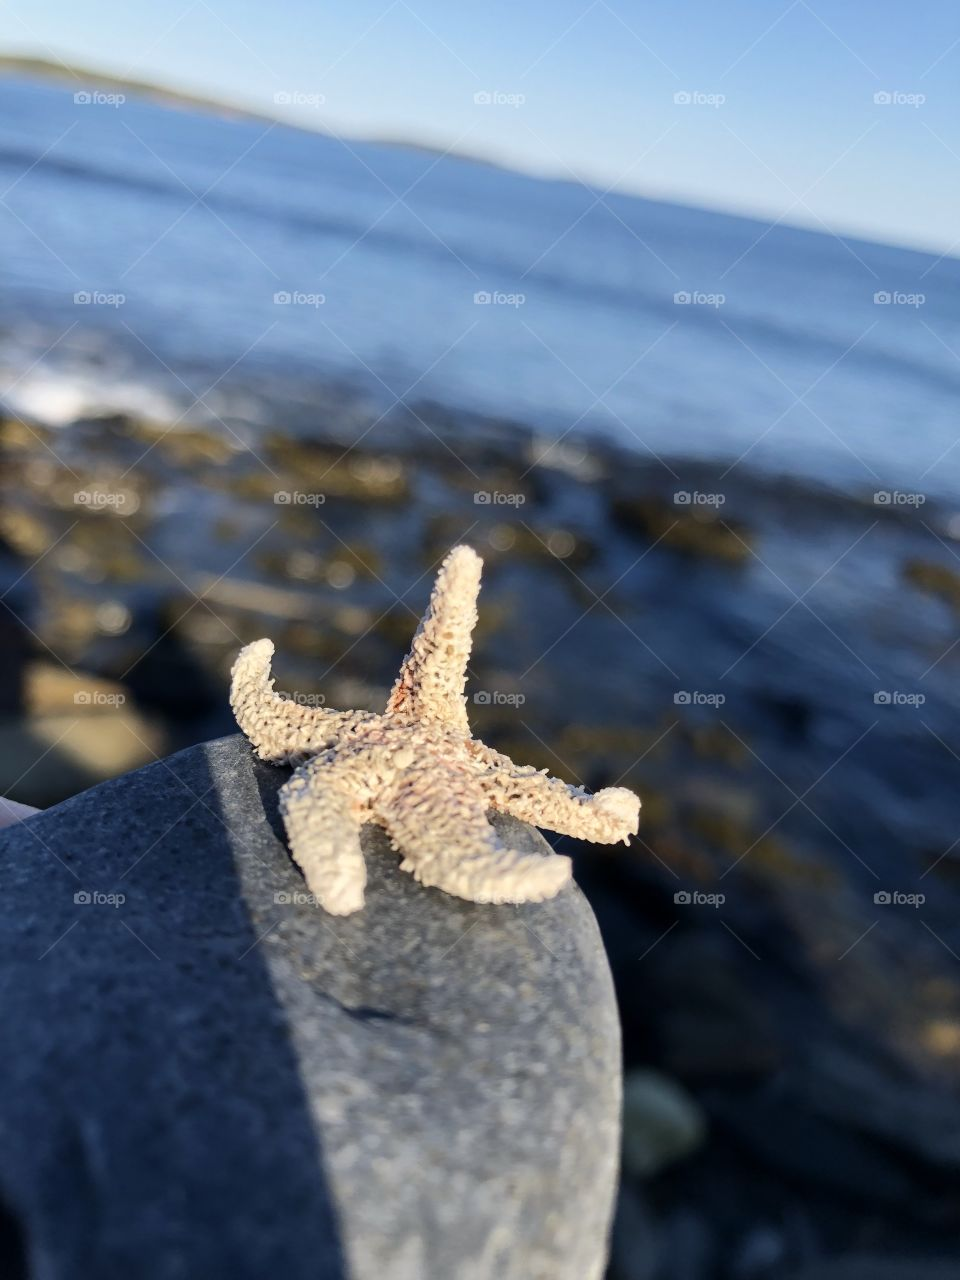 Beautifully shown how the cycle of the life of a starfish is and how it may end